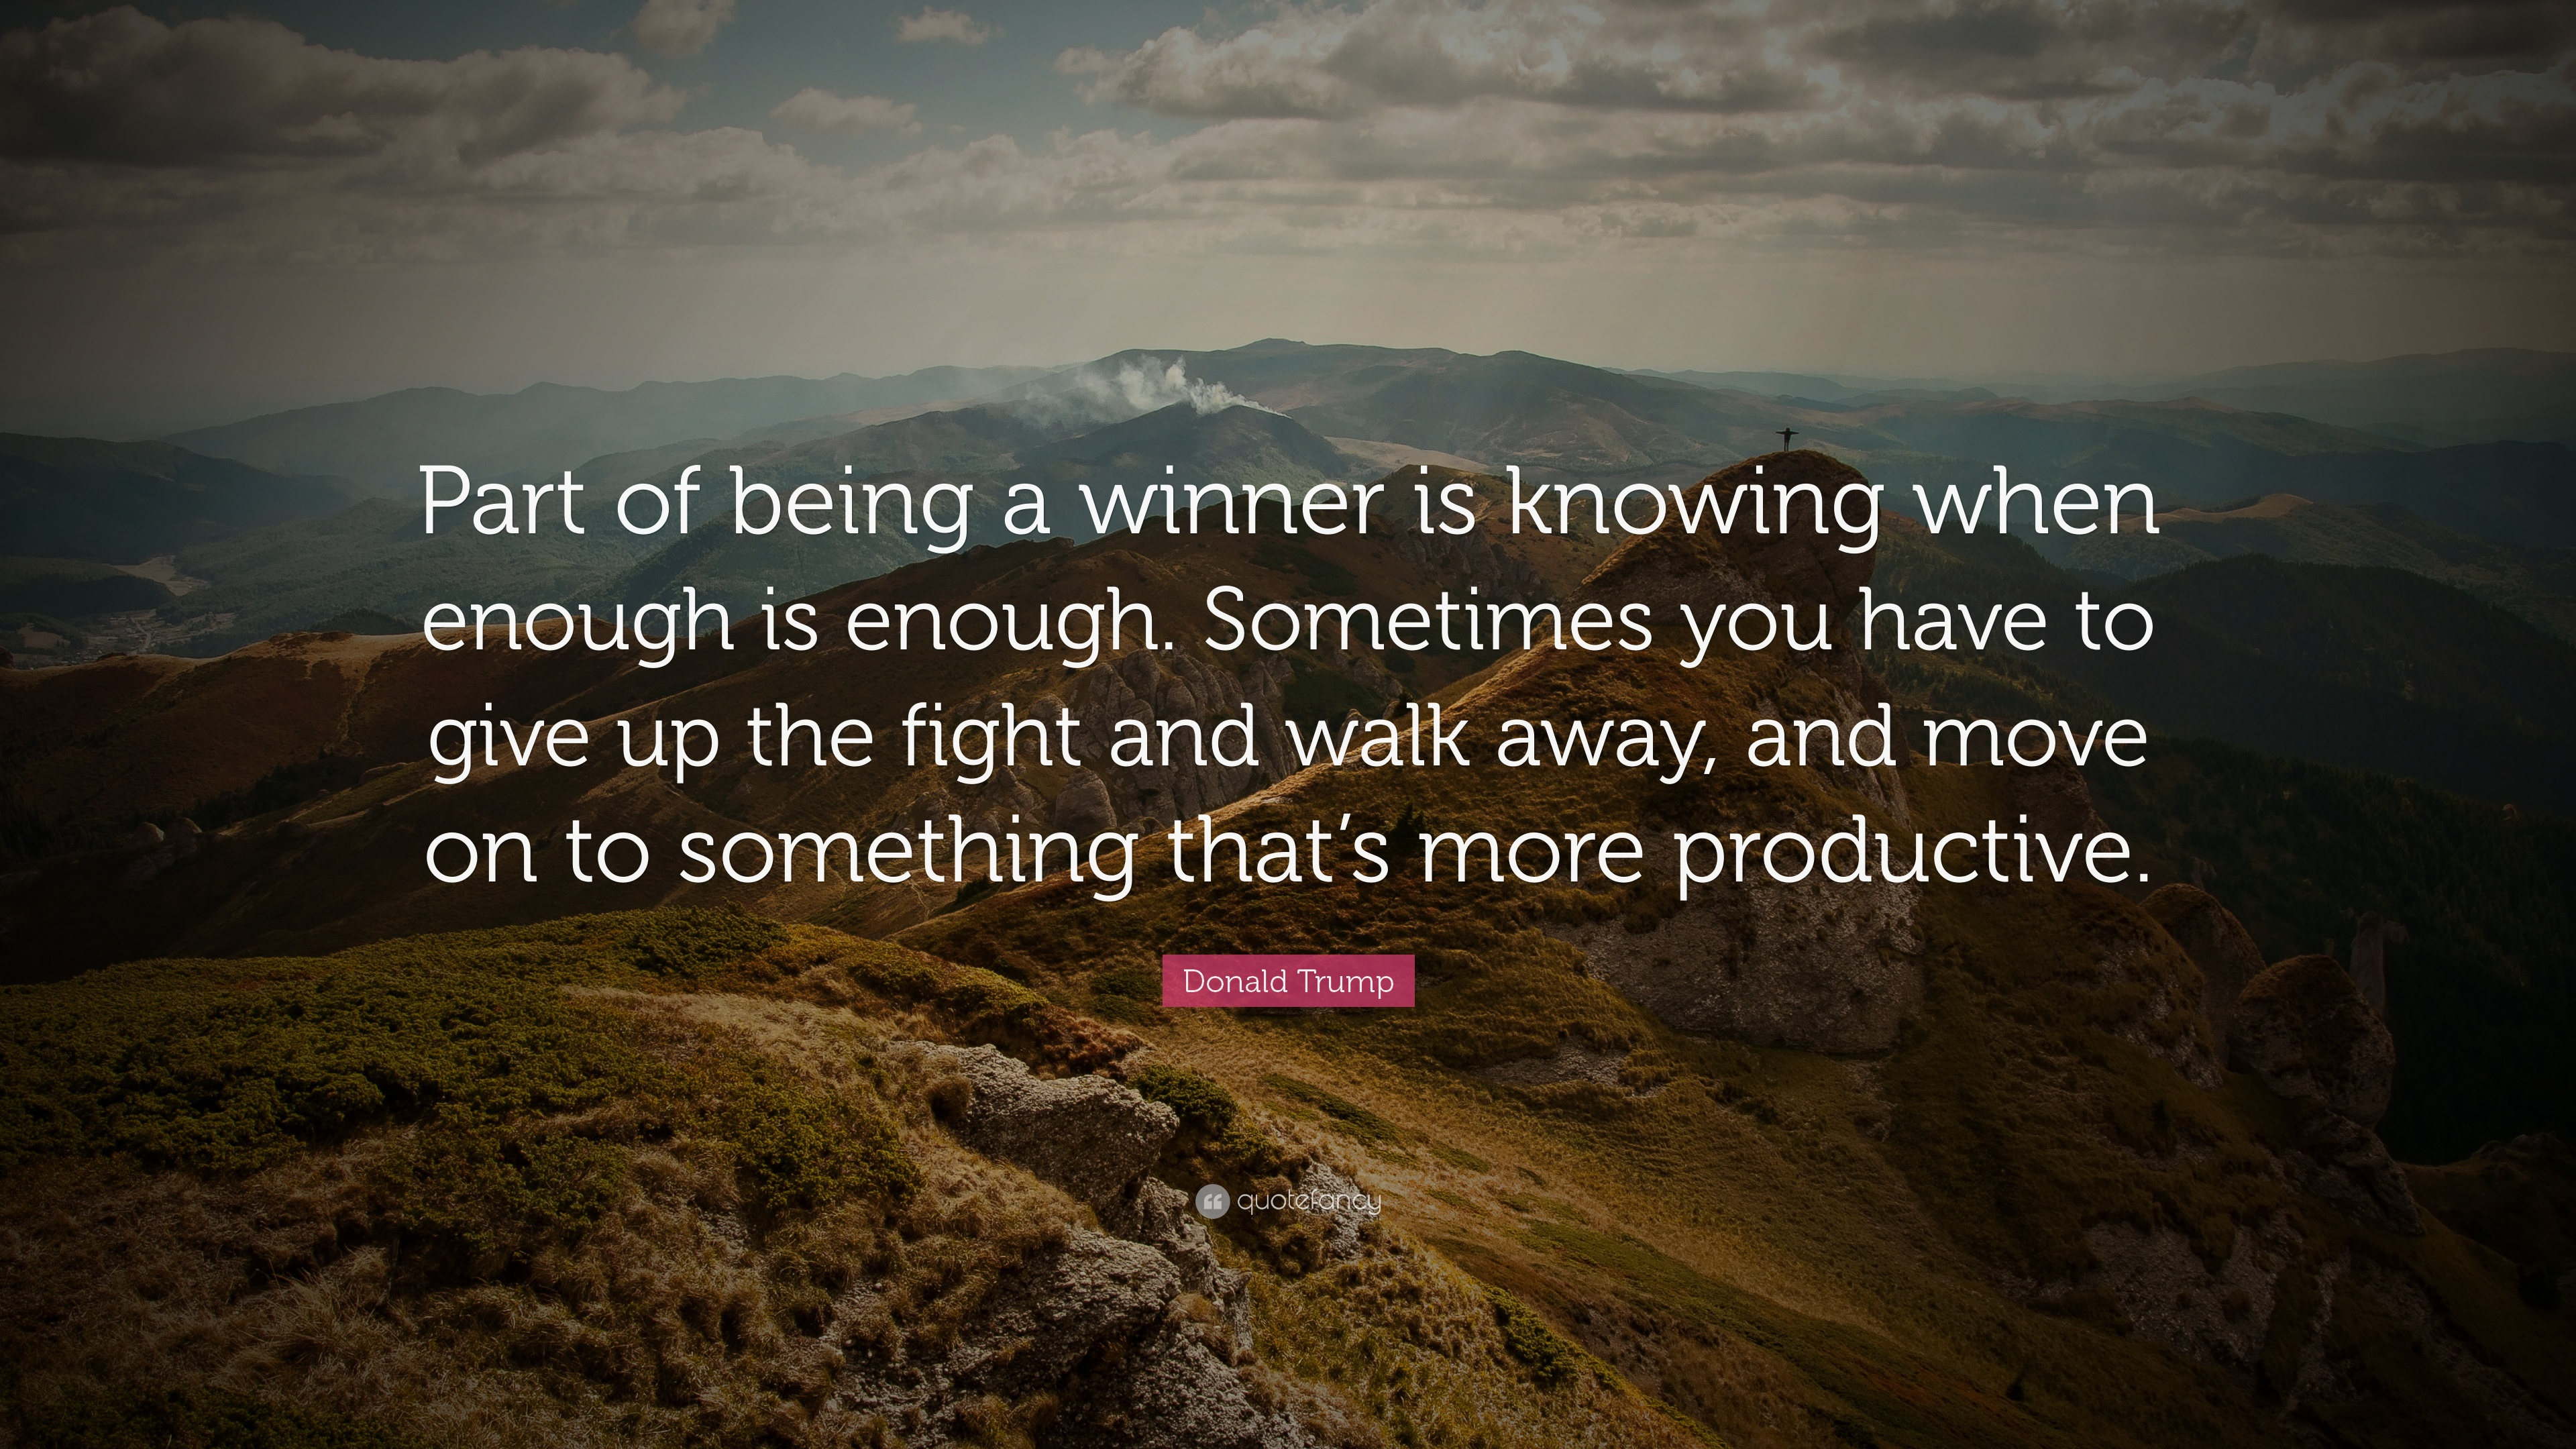 Donald Trump Quote Part Of Being A Winner Is Knowing When Enough